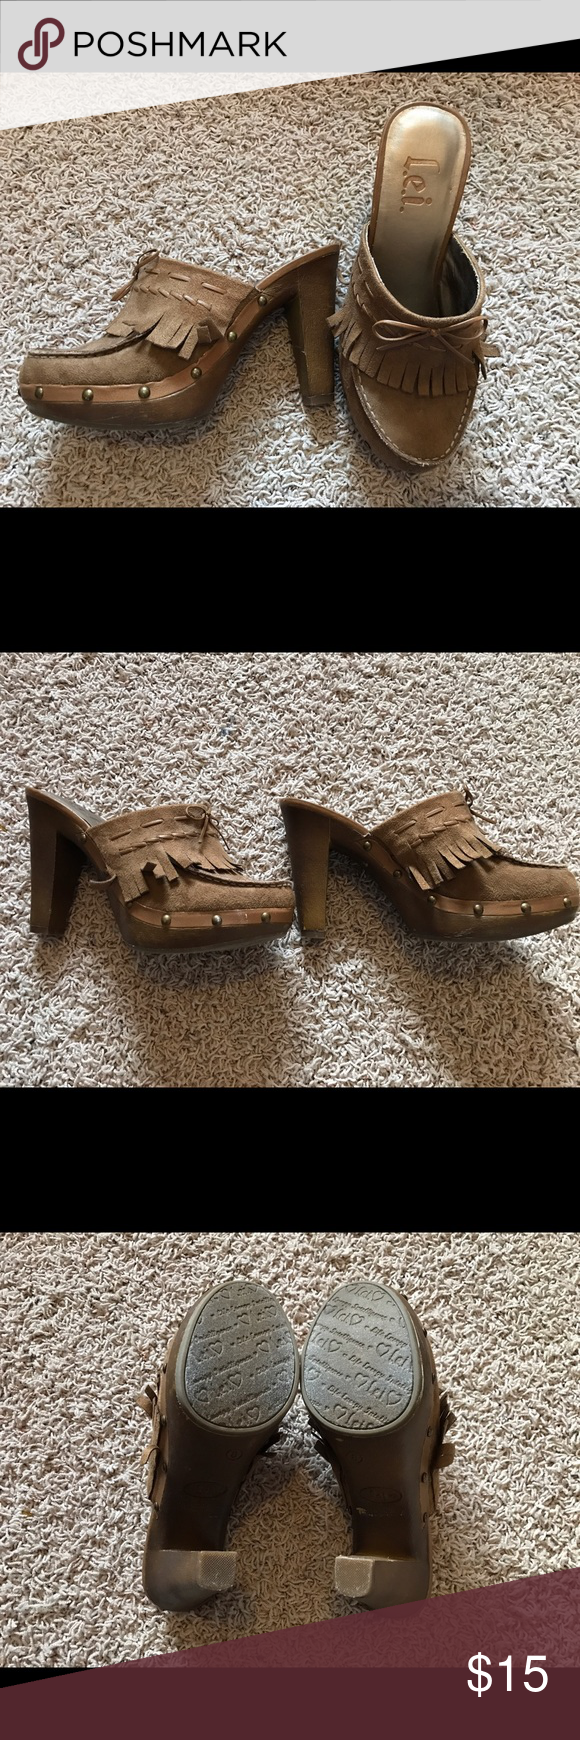 Brown fringe L.e.i. 4.5inch heals L.e.i. 4 1/2 inch heals with fake leather fringe. The have bows on the front and little studs around the bottom. There are a few scrapes on them but nothing too noticeable. L.e.i Shoes Heels